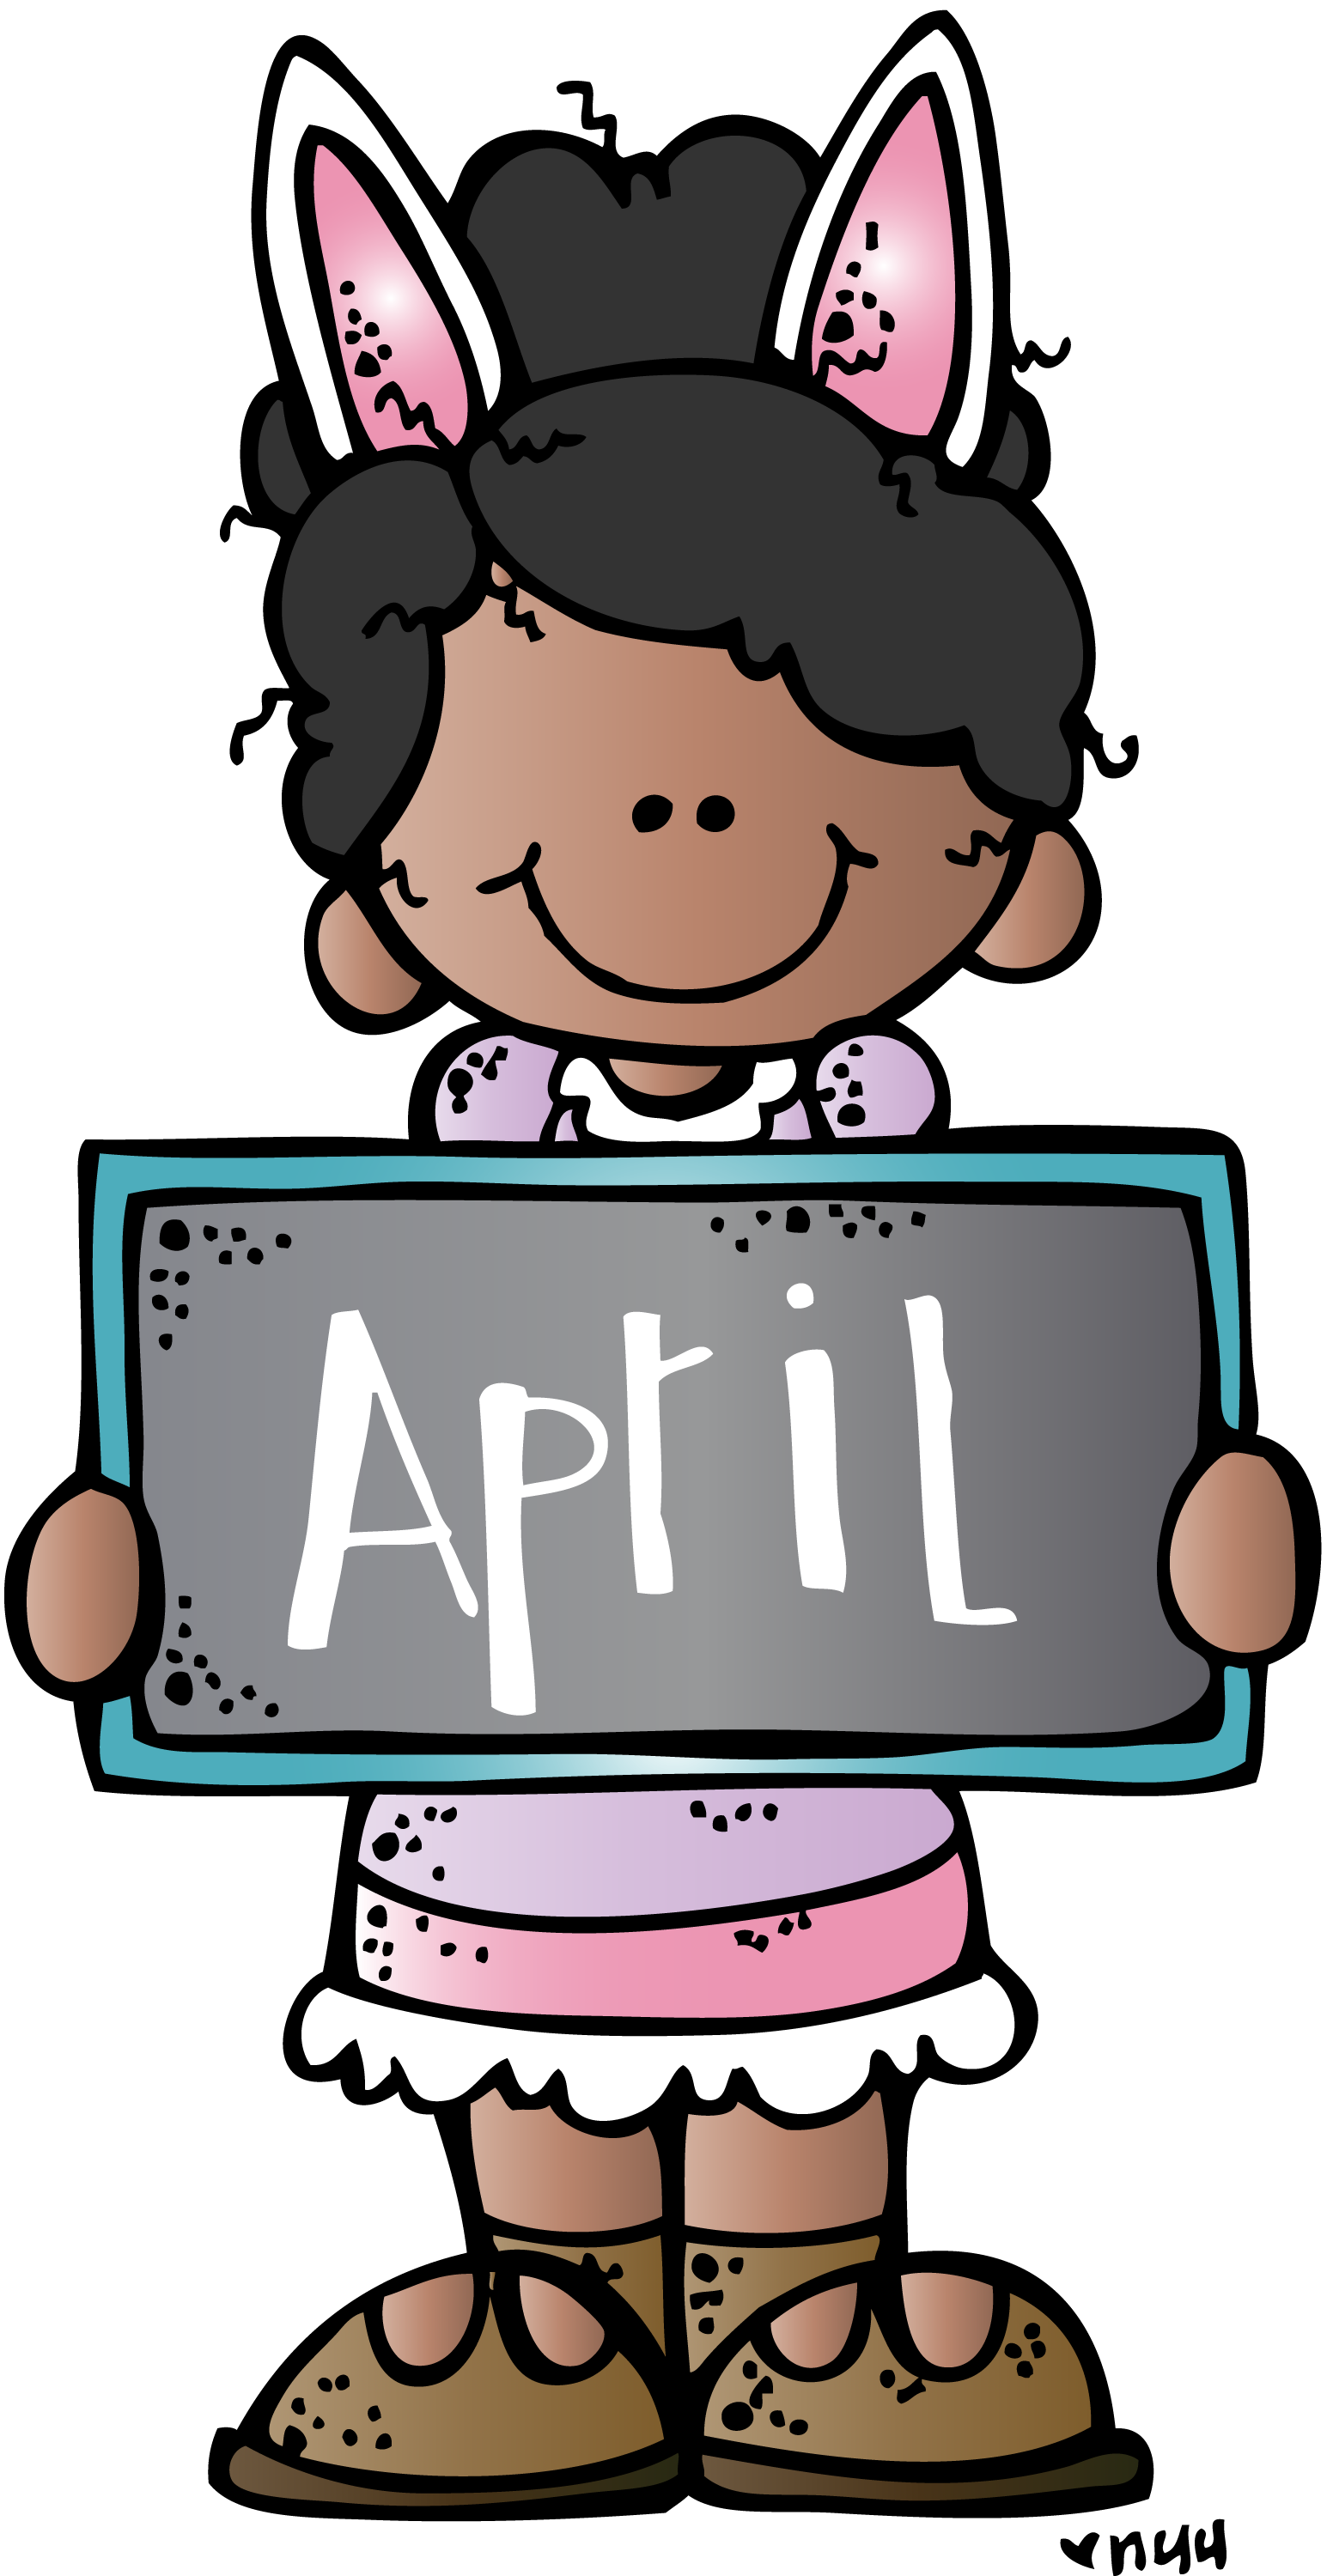 Calendar april clipart svg free library 28+ Collection of April Clipart Melonheadz | High quality, free ... svg free library